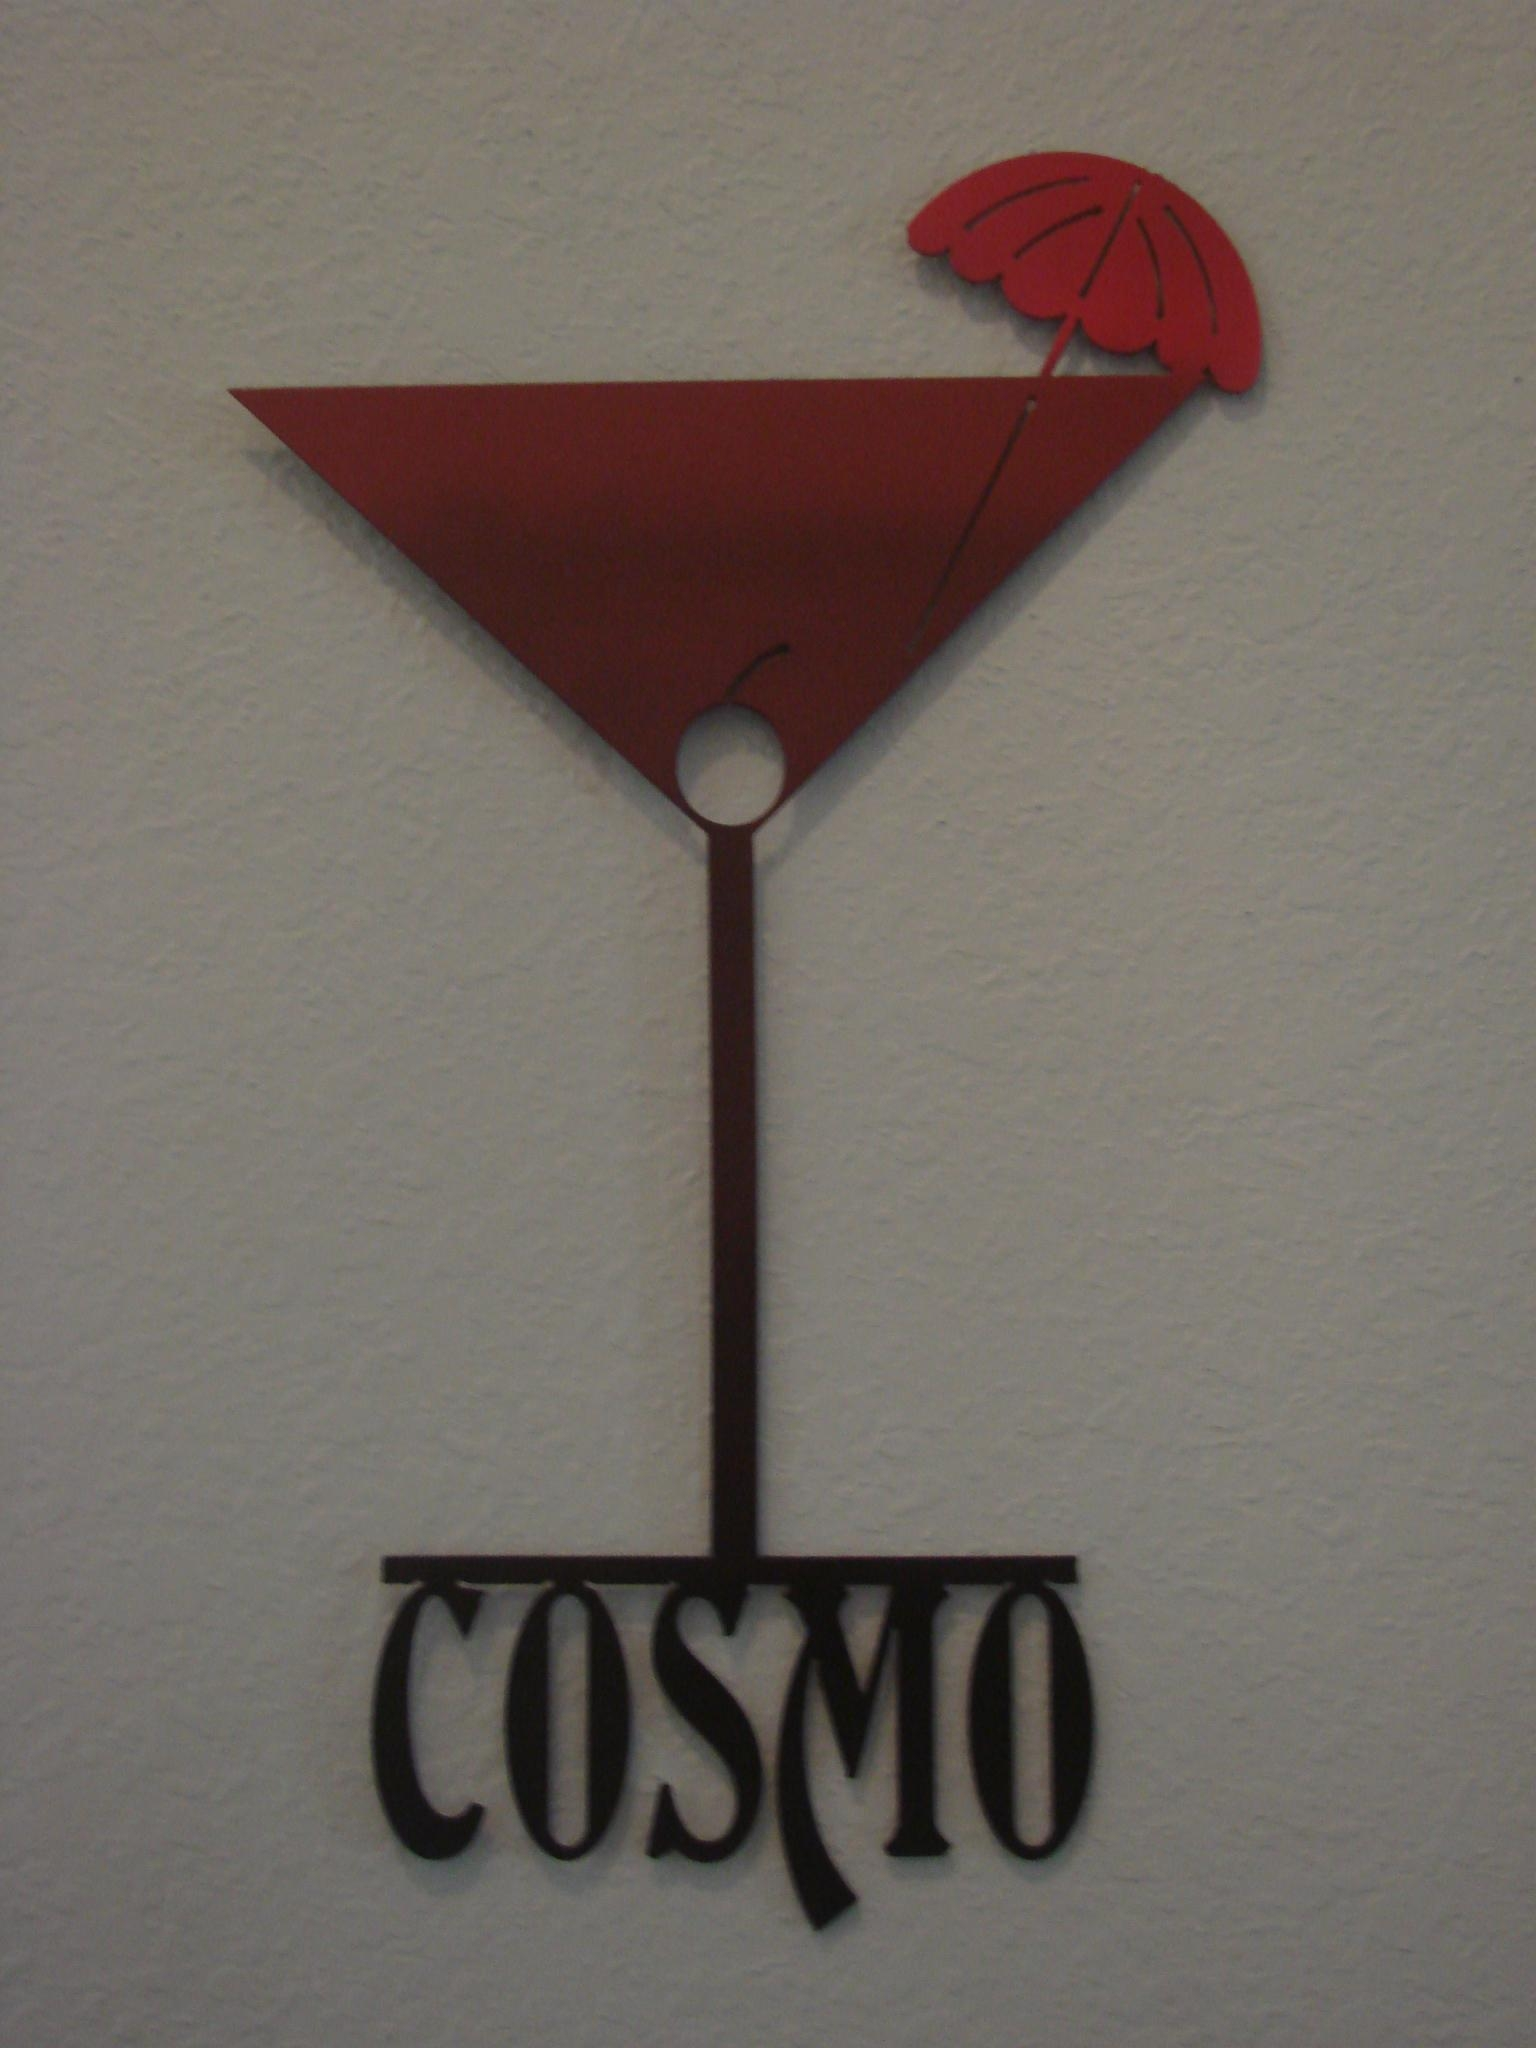 16 Gauge Ombre Red To Black Cosmopolitan Martini Glass Metal Wall for Martini Glass Wall Art